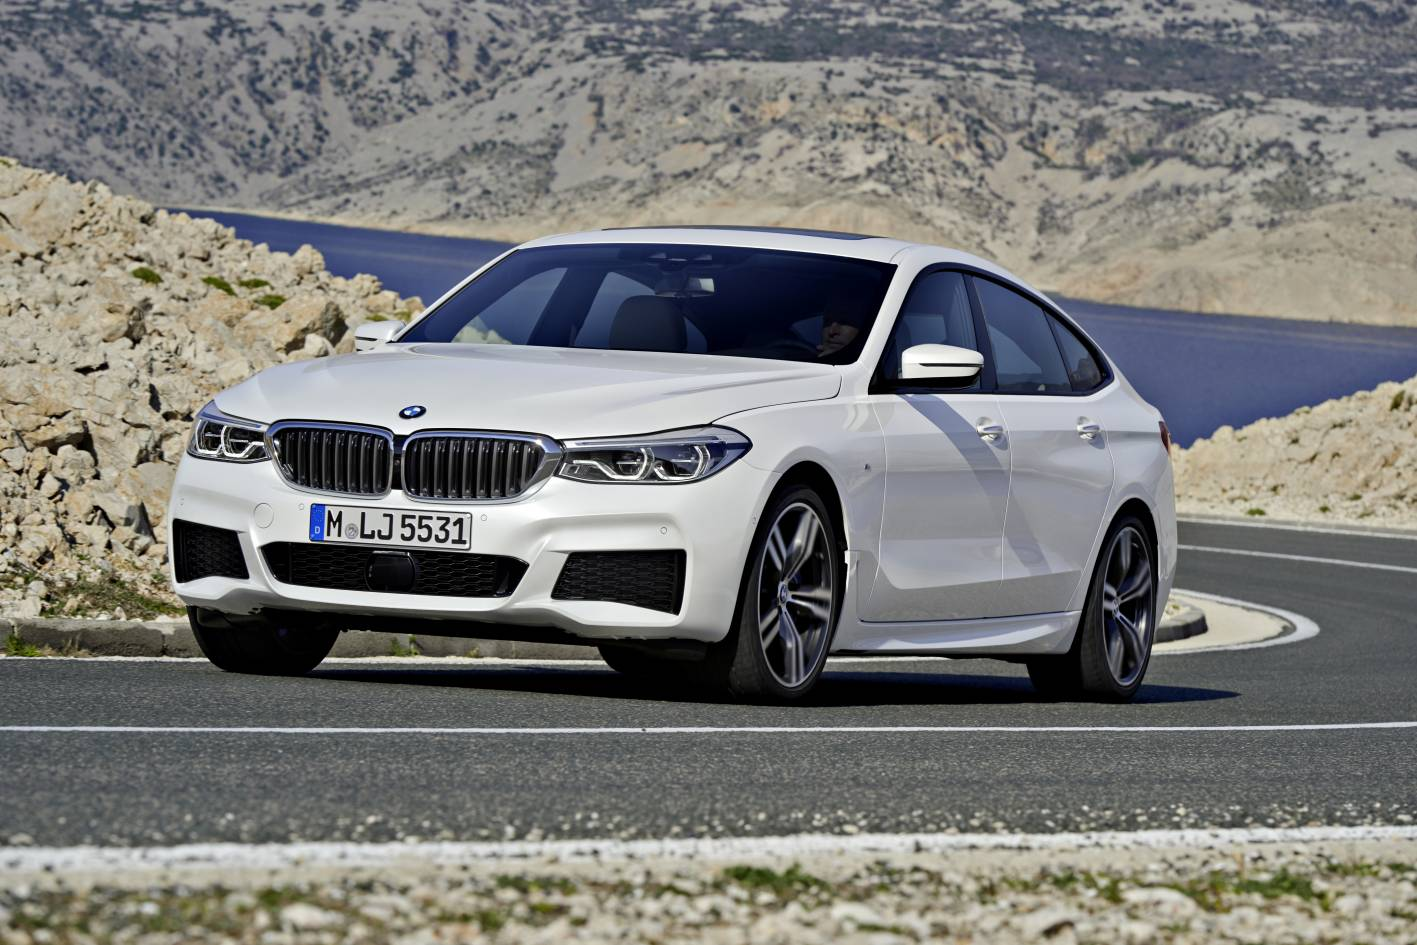 bmw 6 series gran turismo revealed replace 5 series gt performancedrive. Black Bedroom Furniture Sets. Home Design Ideas